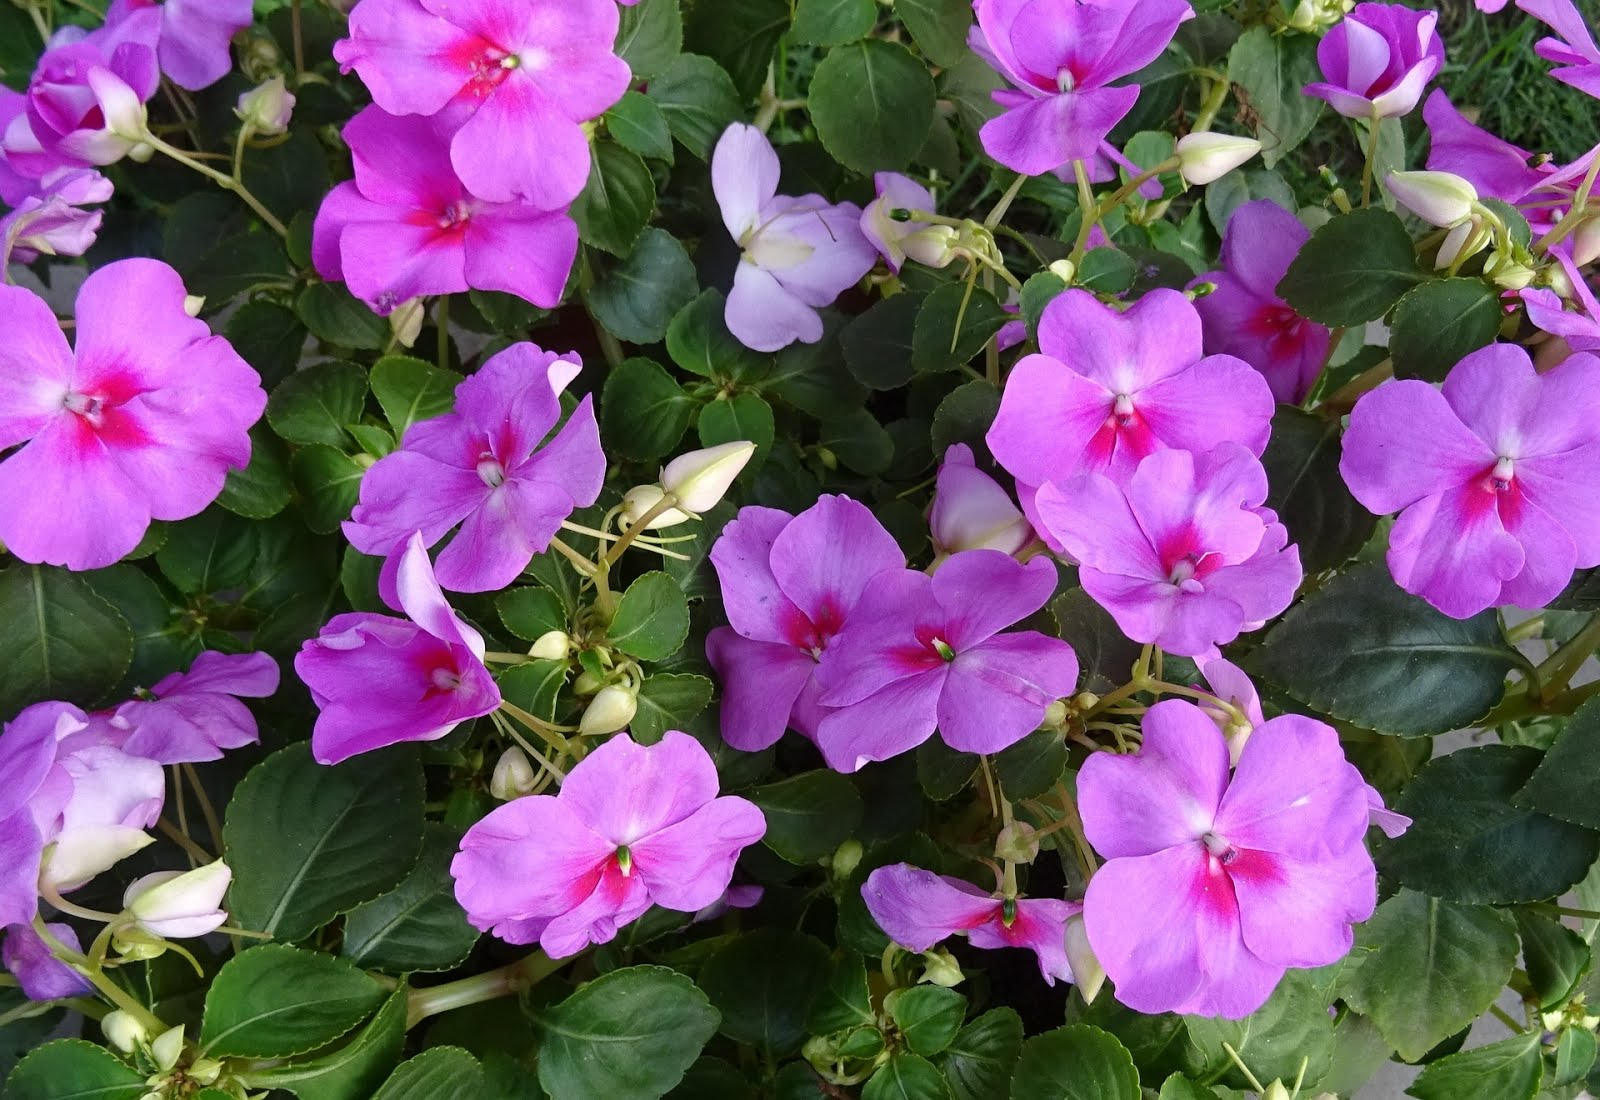 Star nursery blog get the flower garden of your dreams fernlike plant with large bright daisy like flowers in shades of pink purple white or lavender it frequently reaches 3 feet in height and makes a izmirmasajfo Image collections